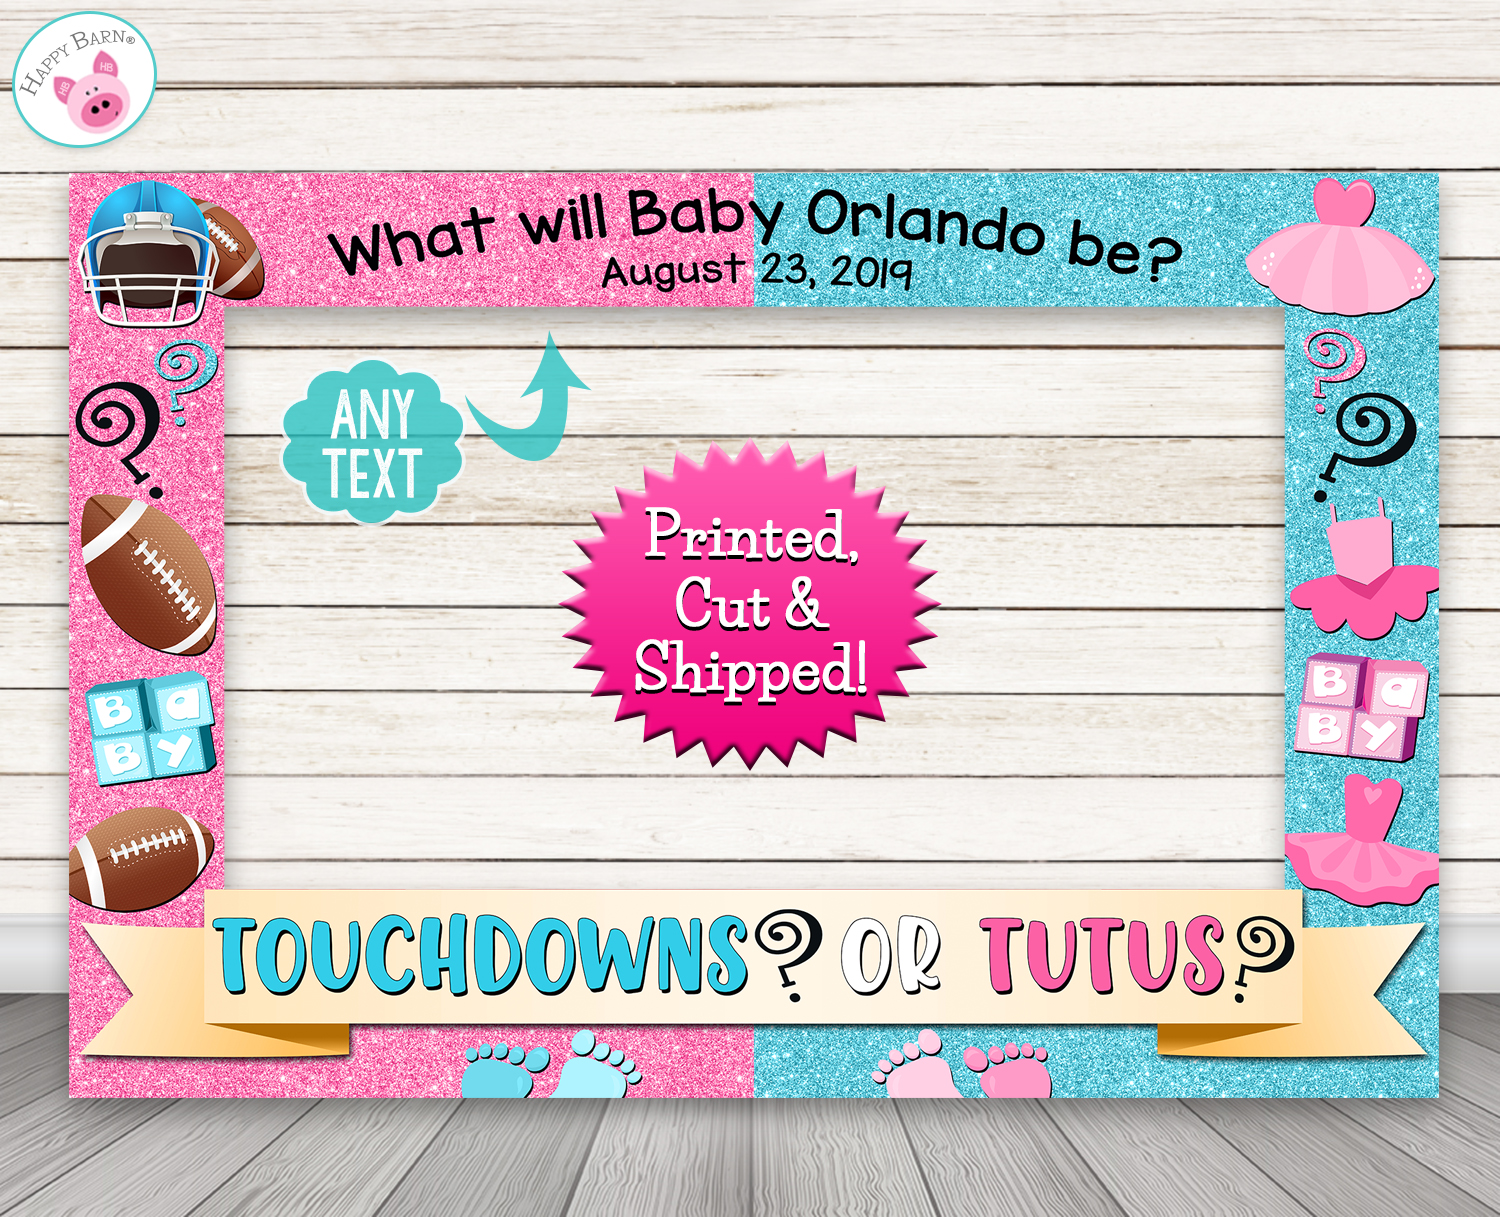 Touchdowns Or Tutus Gender Reveal Baby Shower Photo Booth Frame